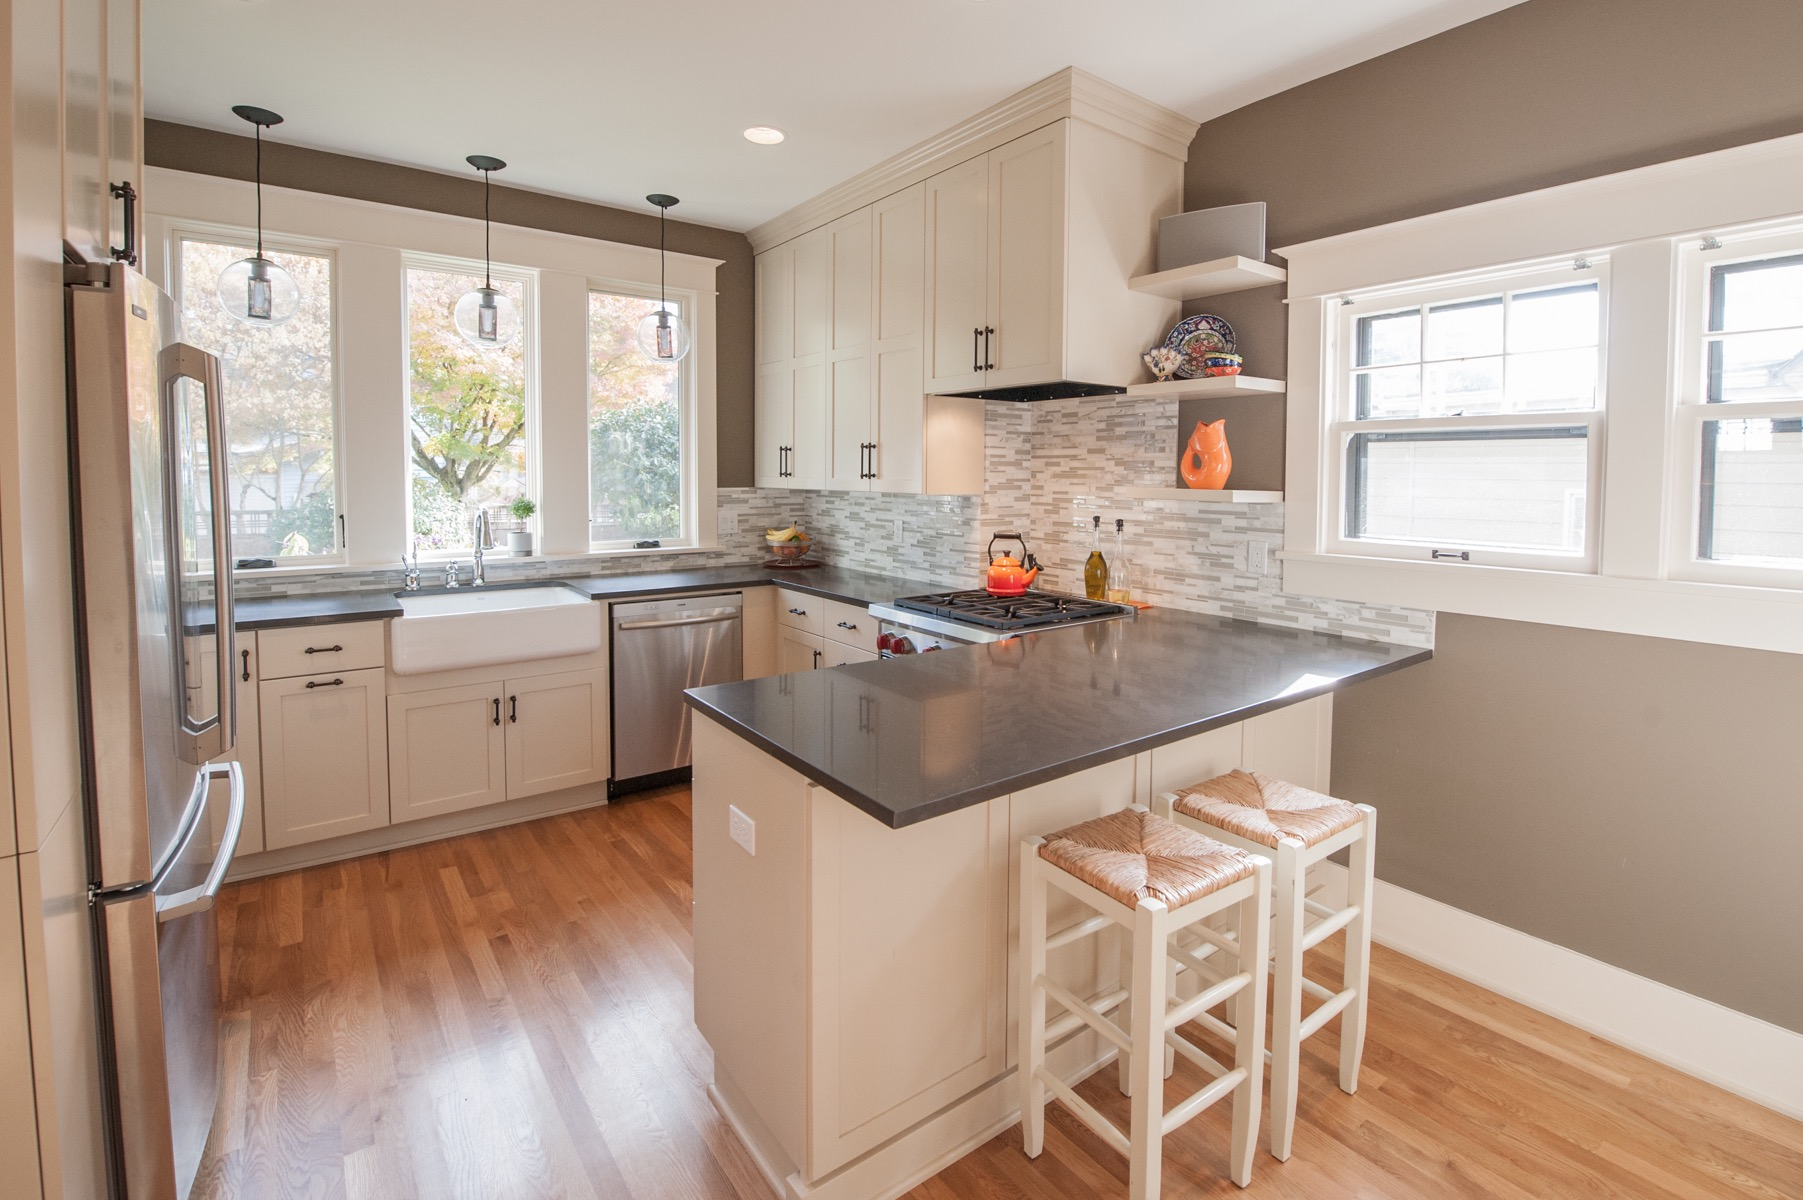 Chic White Color For Minimalist Kitchen Cabinets (View 5 of 18)